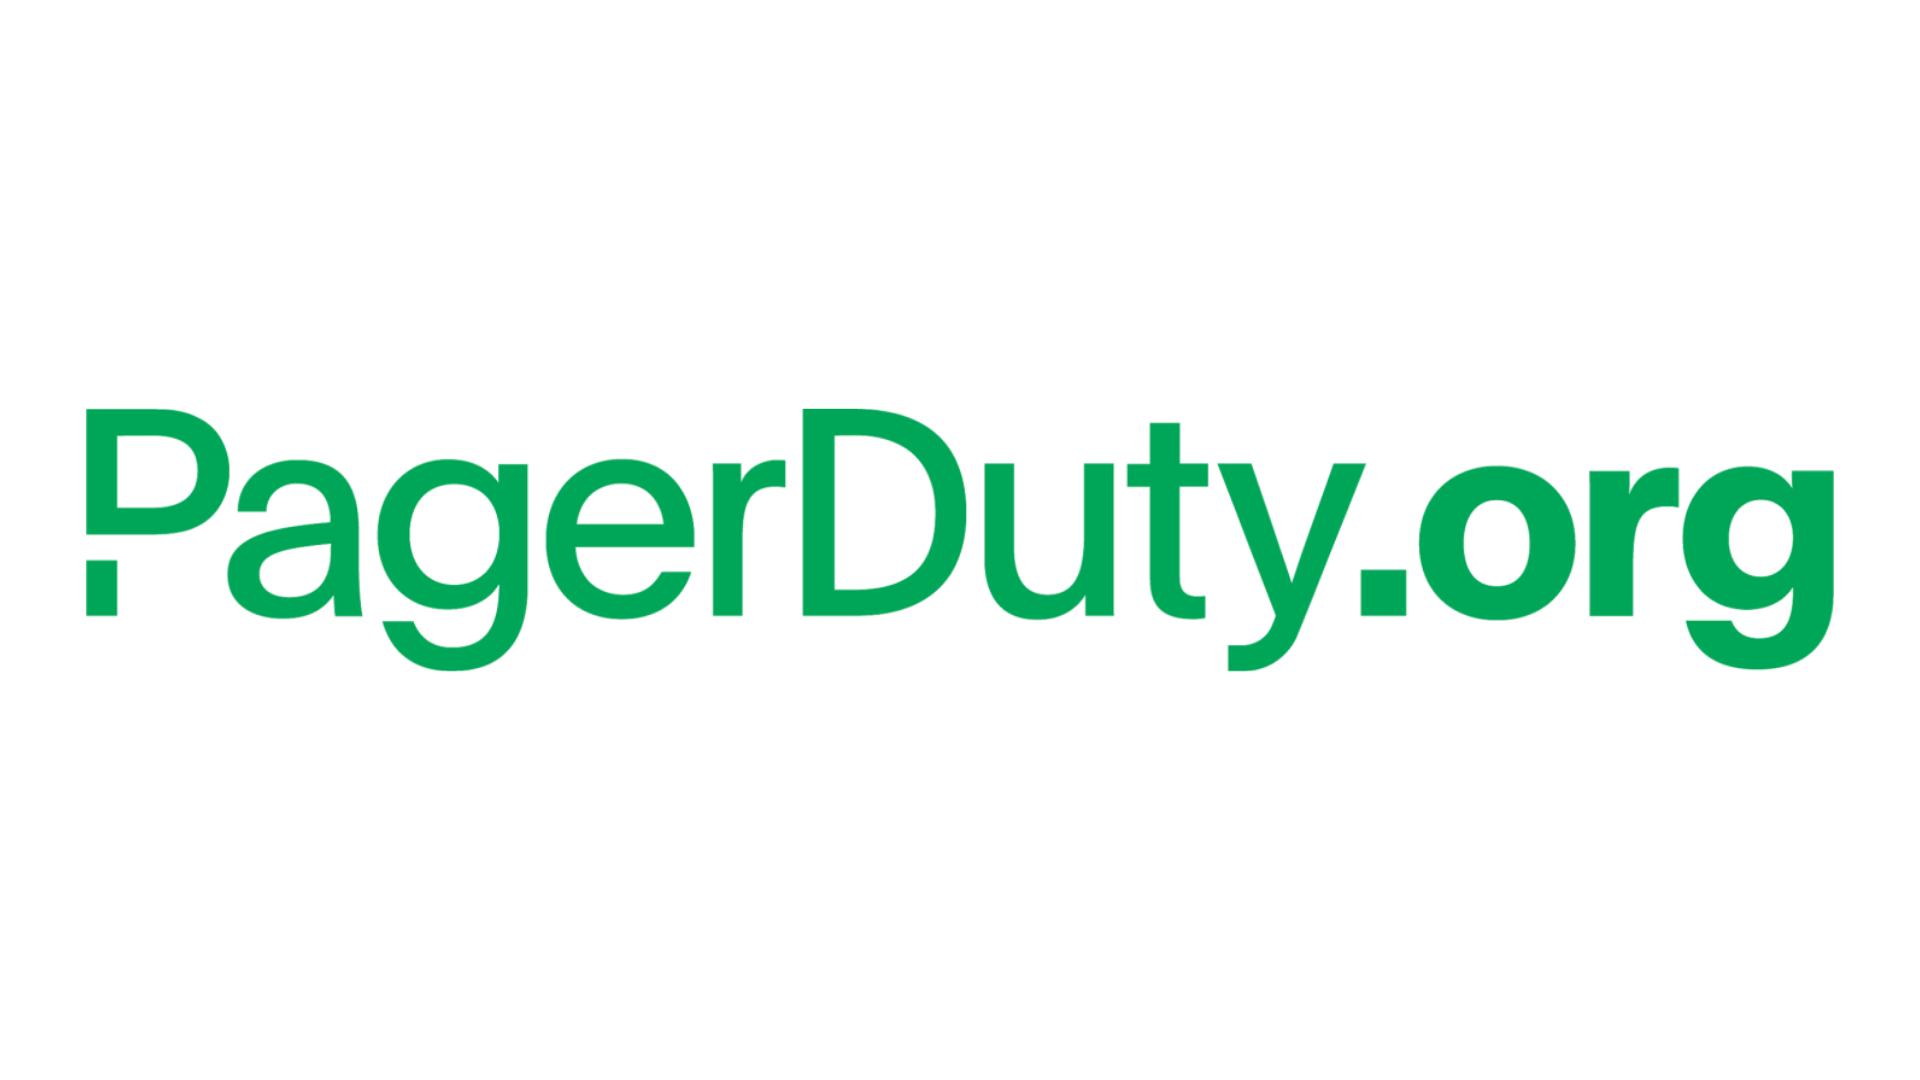 PagerDuty.org